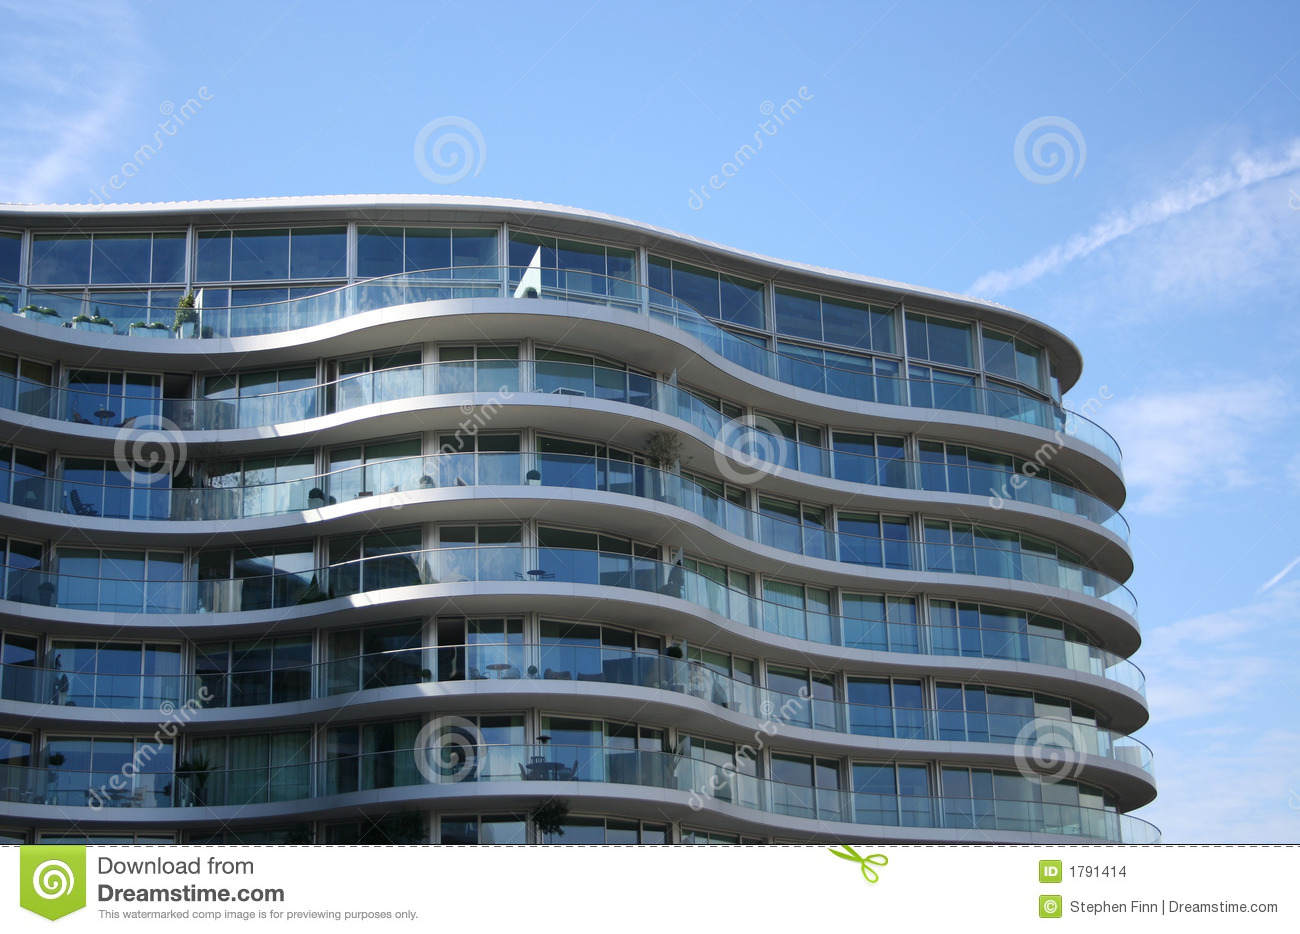 Apartment Building Images curved apartment building stock photo - image: 64282012